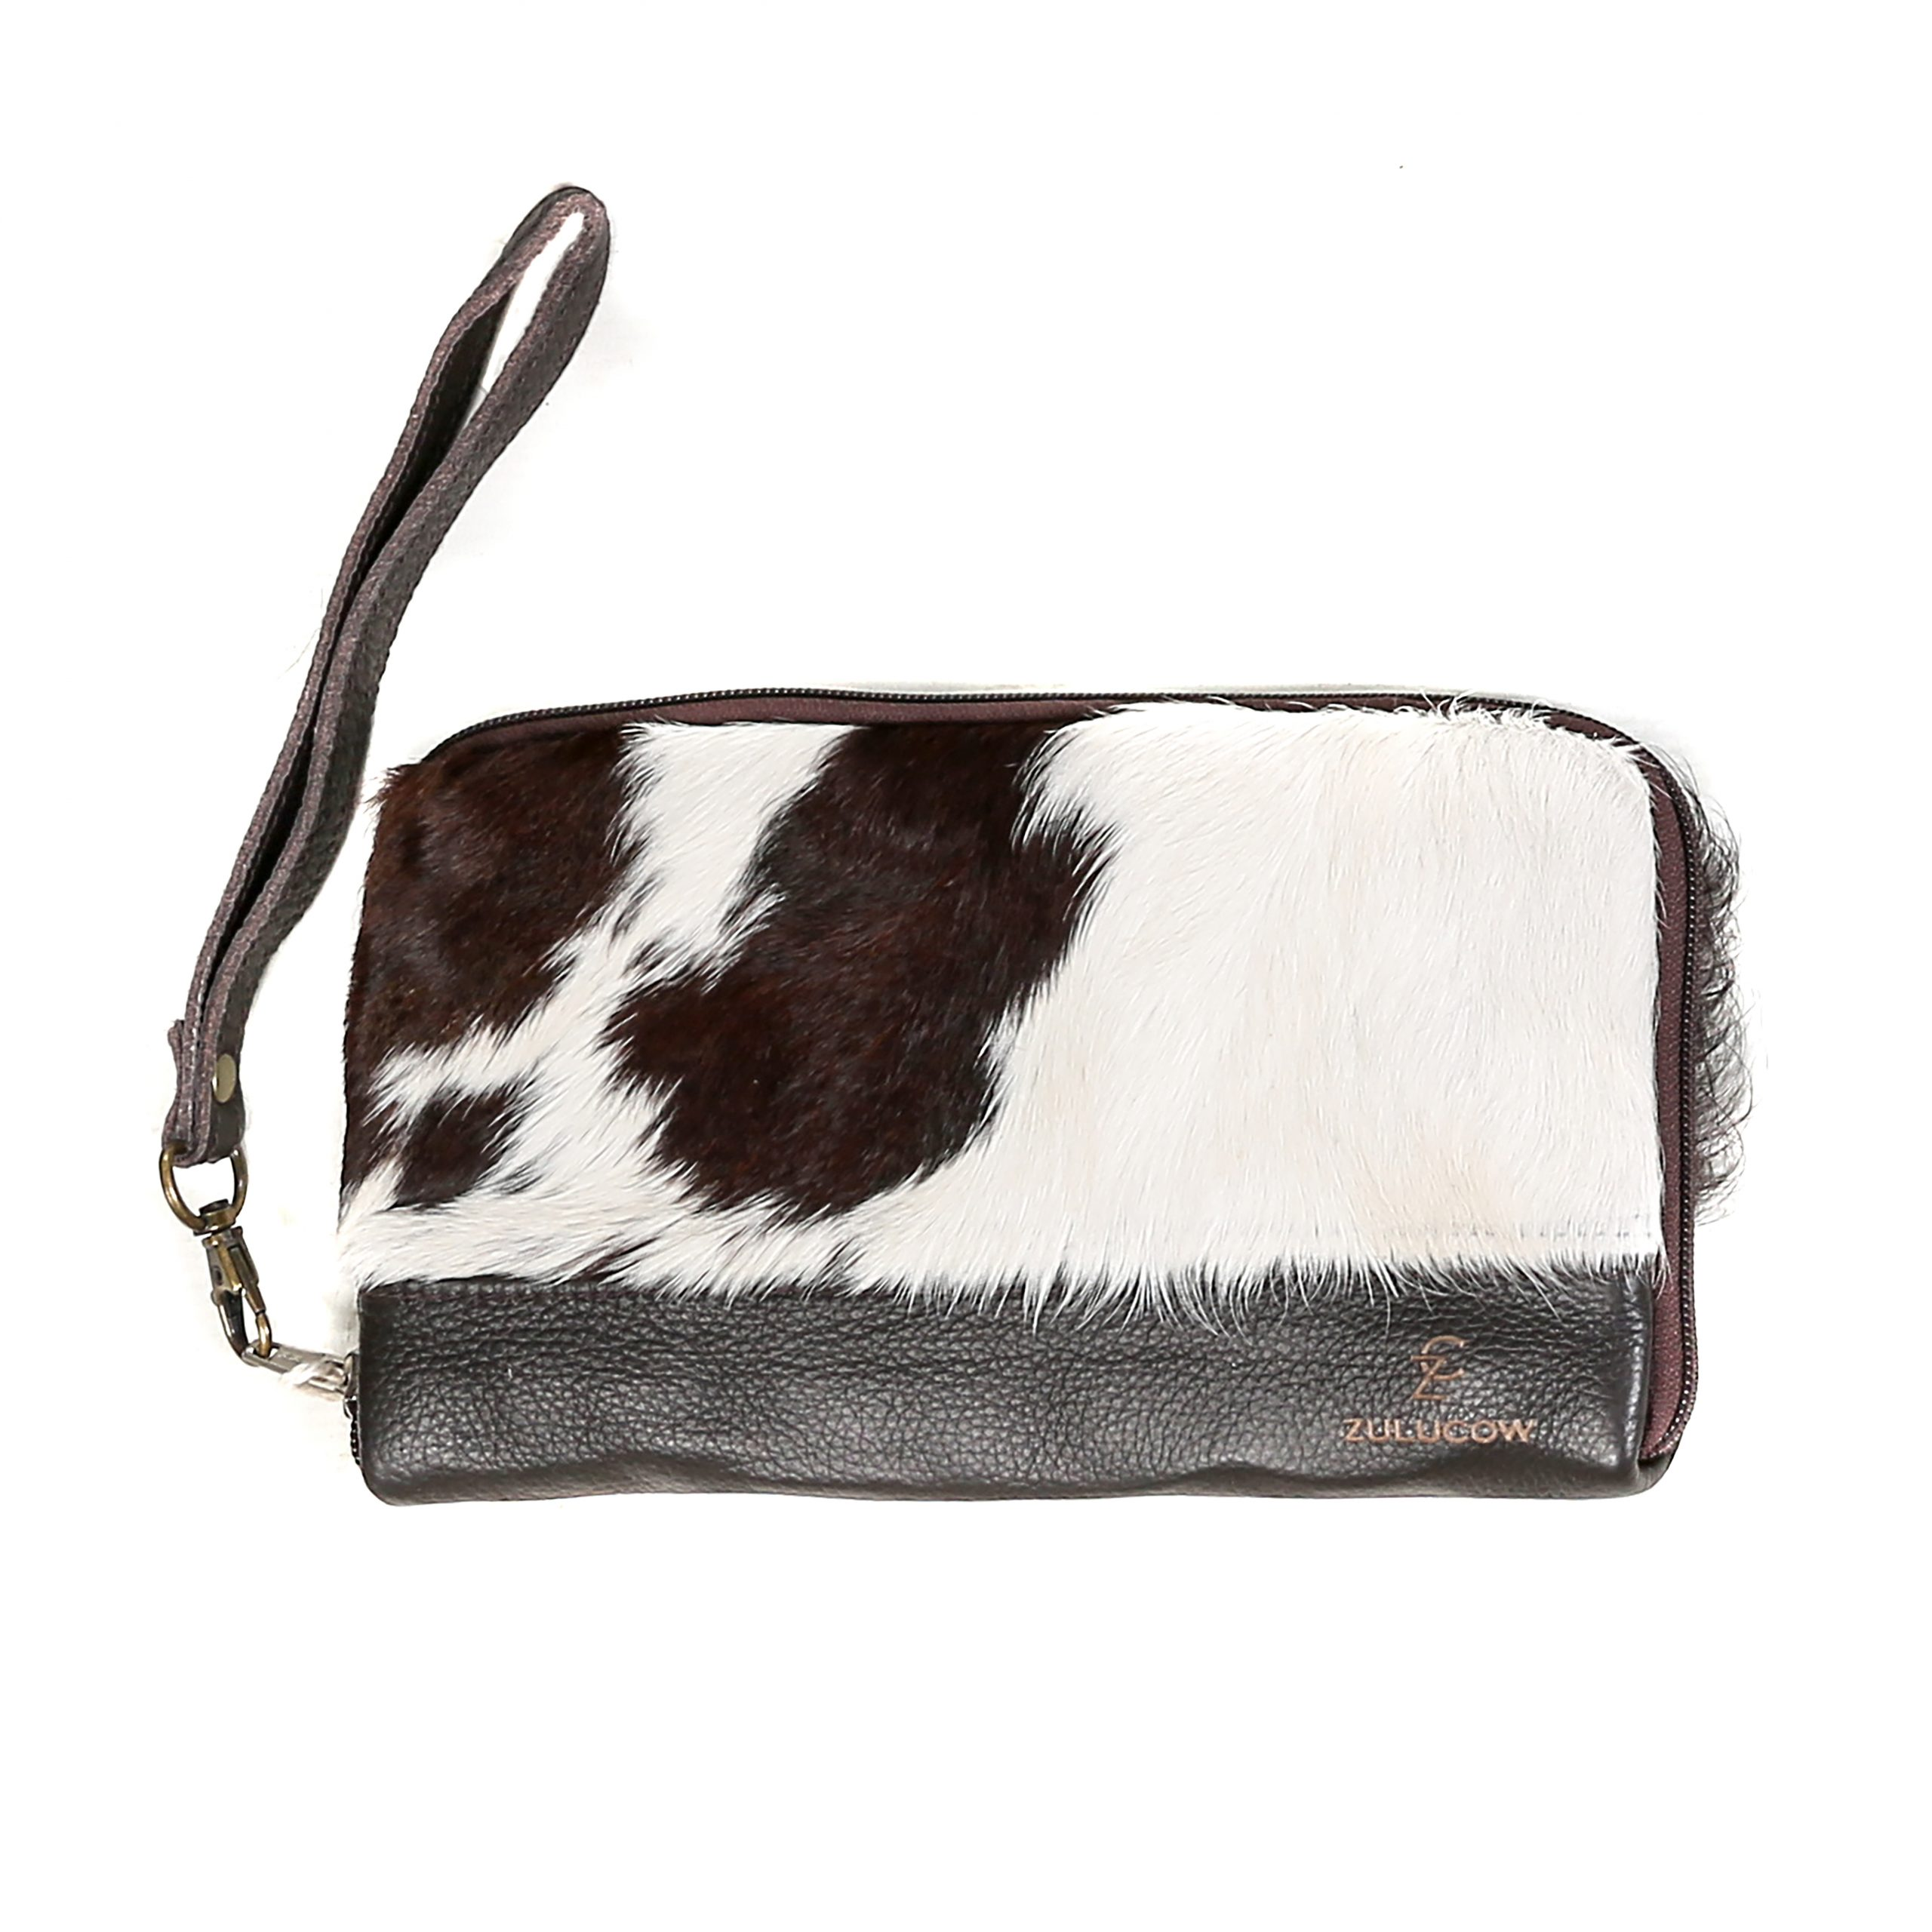 cowhide purse, wallet, travel wallet, clutch, cowhide clutch,leather wallet sustainable fashion, slow fashion, sustainable, handmade purse, artisan-made, ethically made, christmas gifts for her, leather wallet